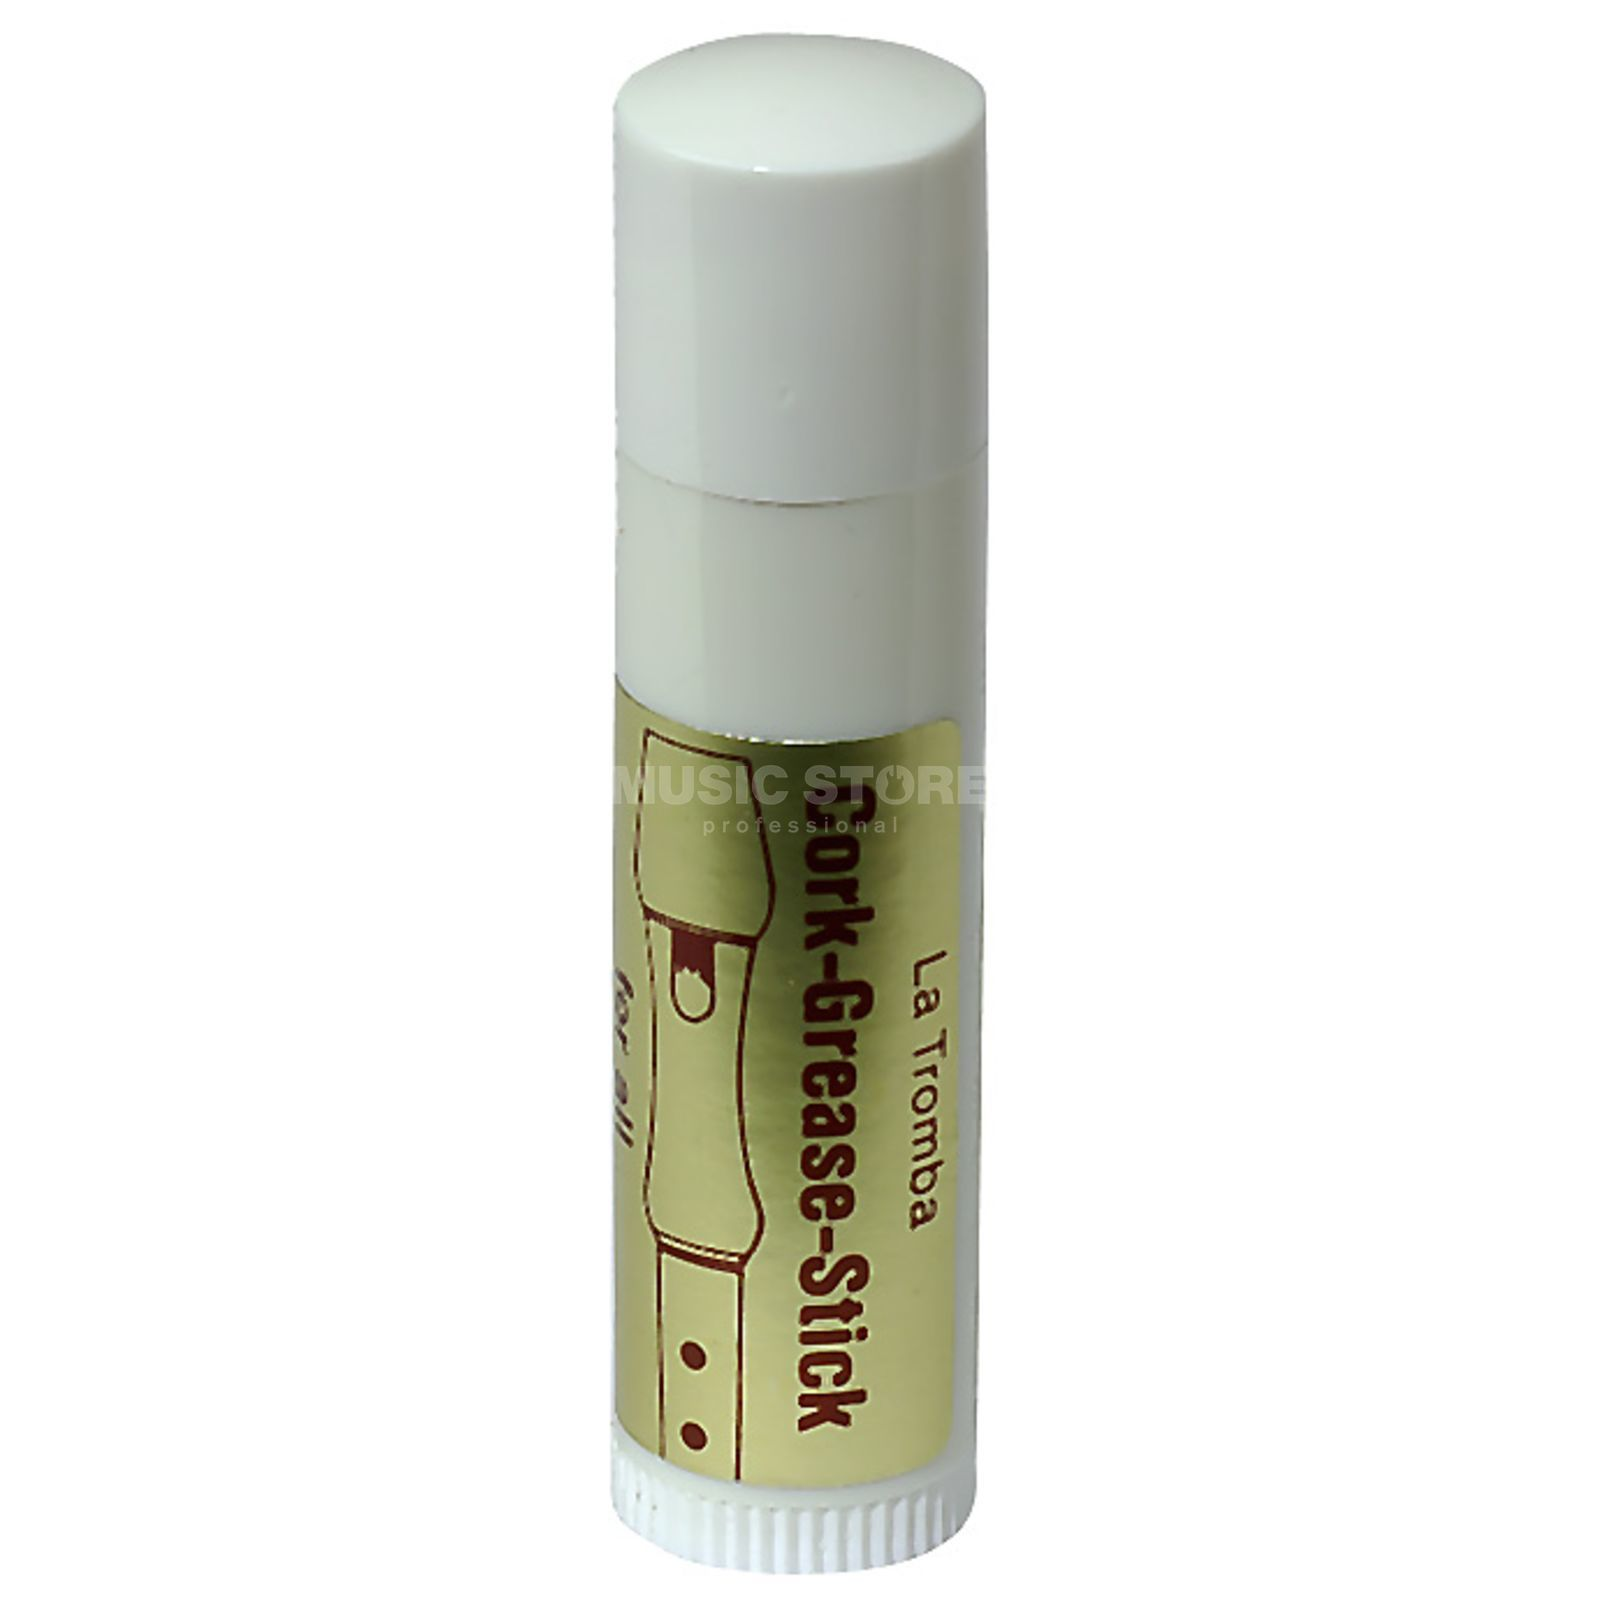 LA TROMBA Cork Grease Stick 5g (100g = 66.- Ç) Product Image